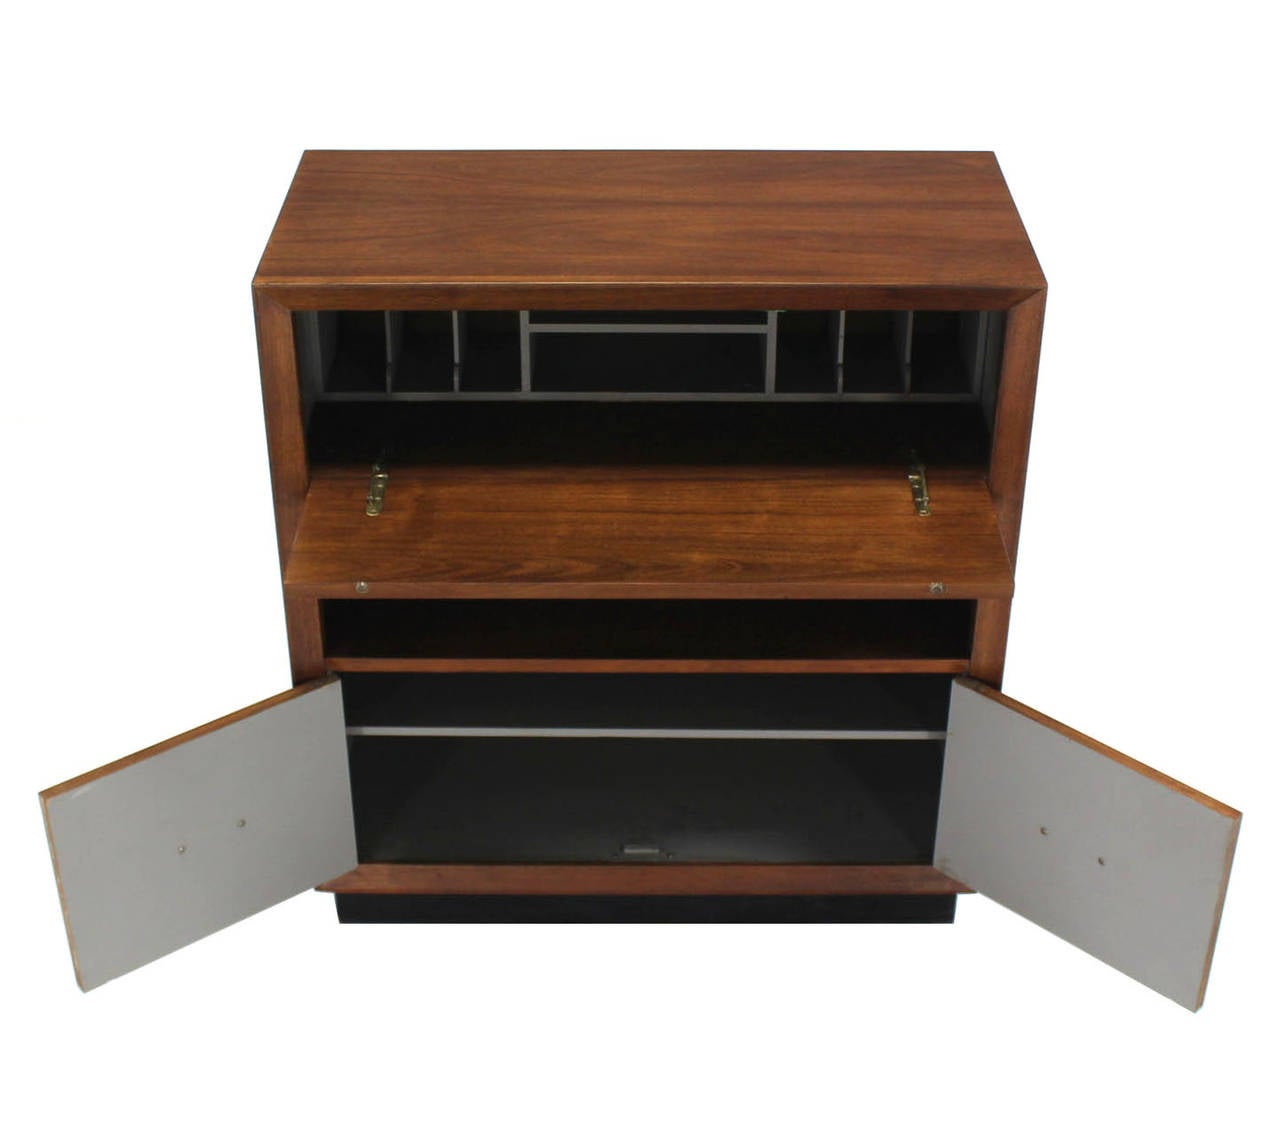 Walnut Mid Century Modern Drop Down Desk Secretary In Excellent Condition For Sale In Elmwood Park, NJ